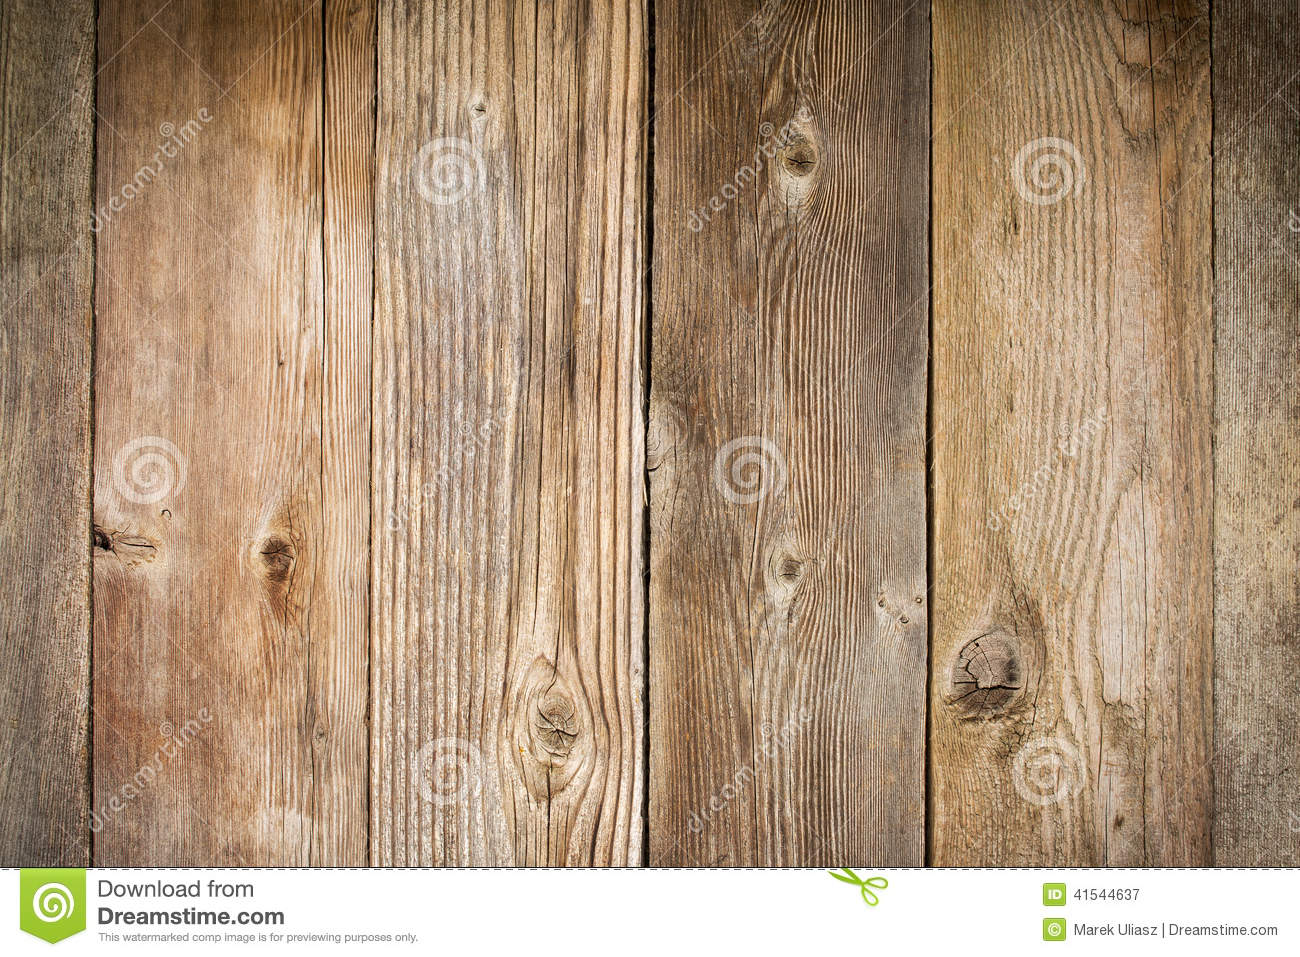 rustic weathered wood background with grain and knots vertical planks